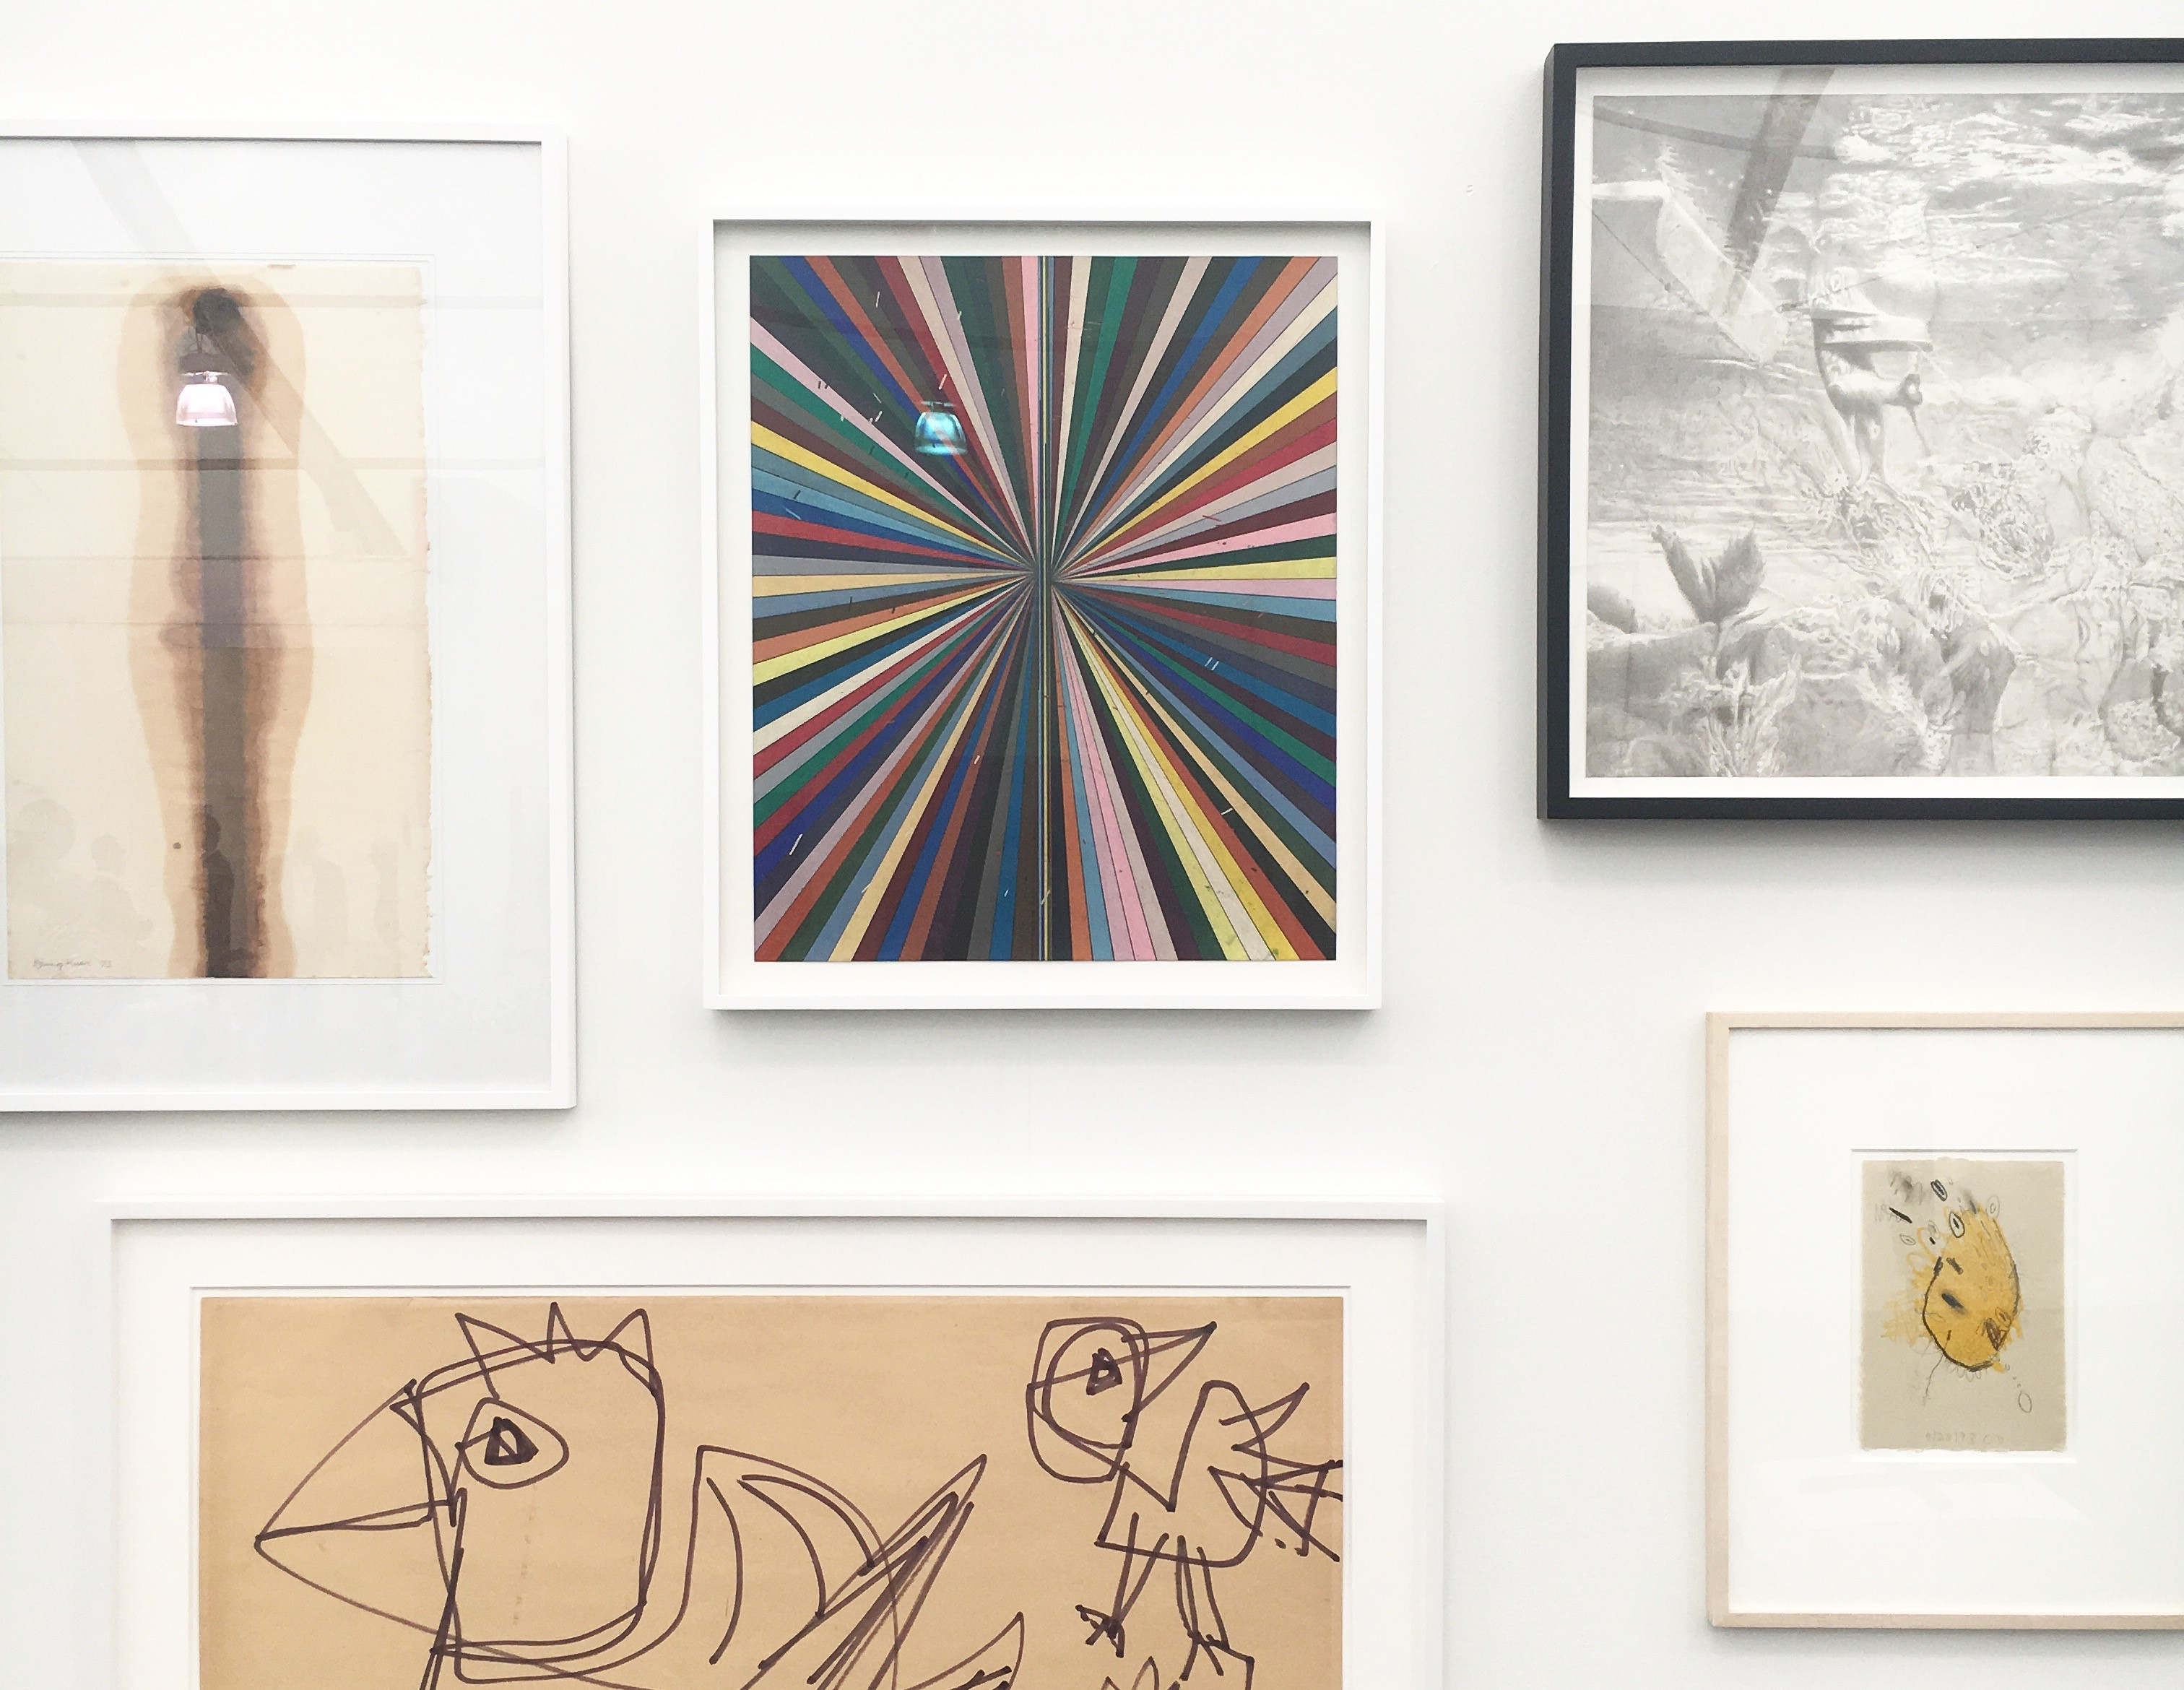 Blum and Poe Booth at Frieze NY